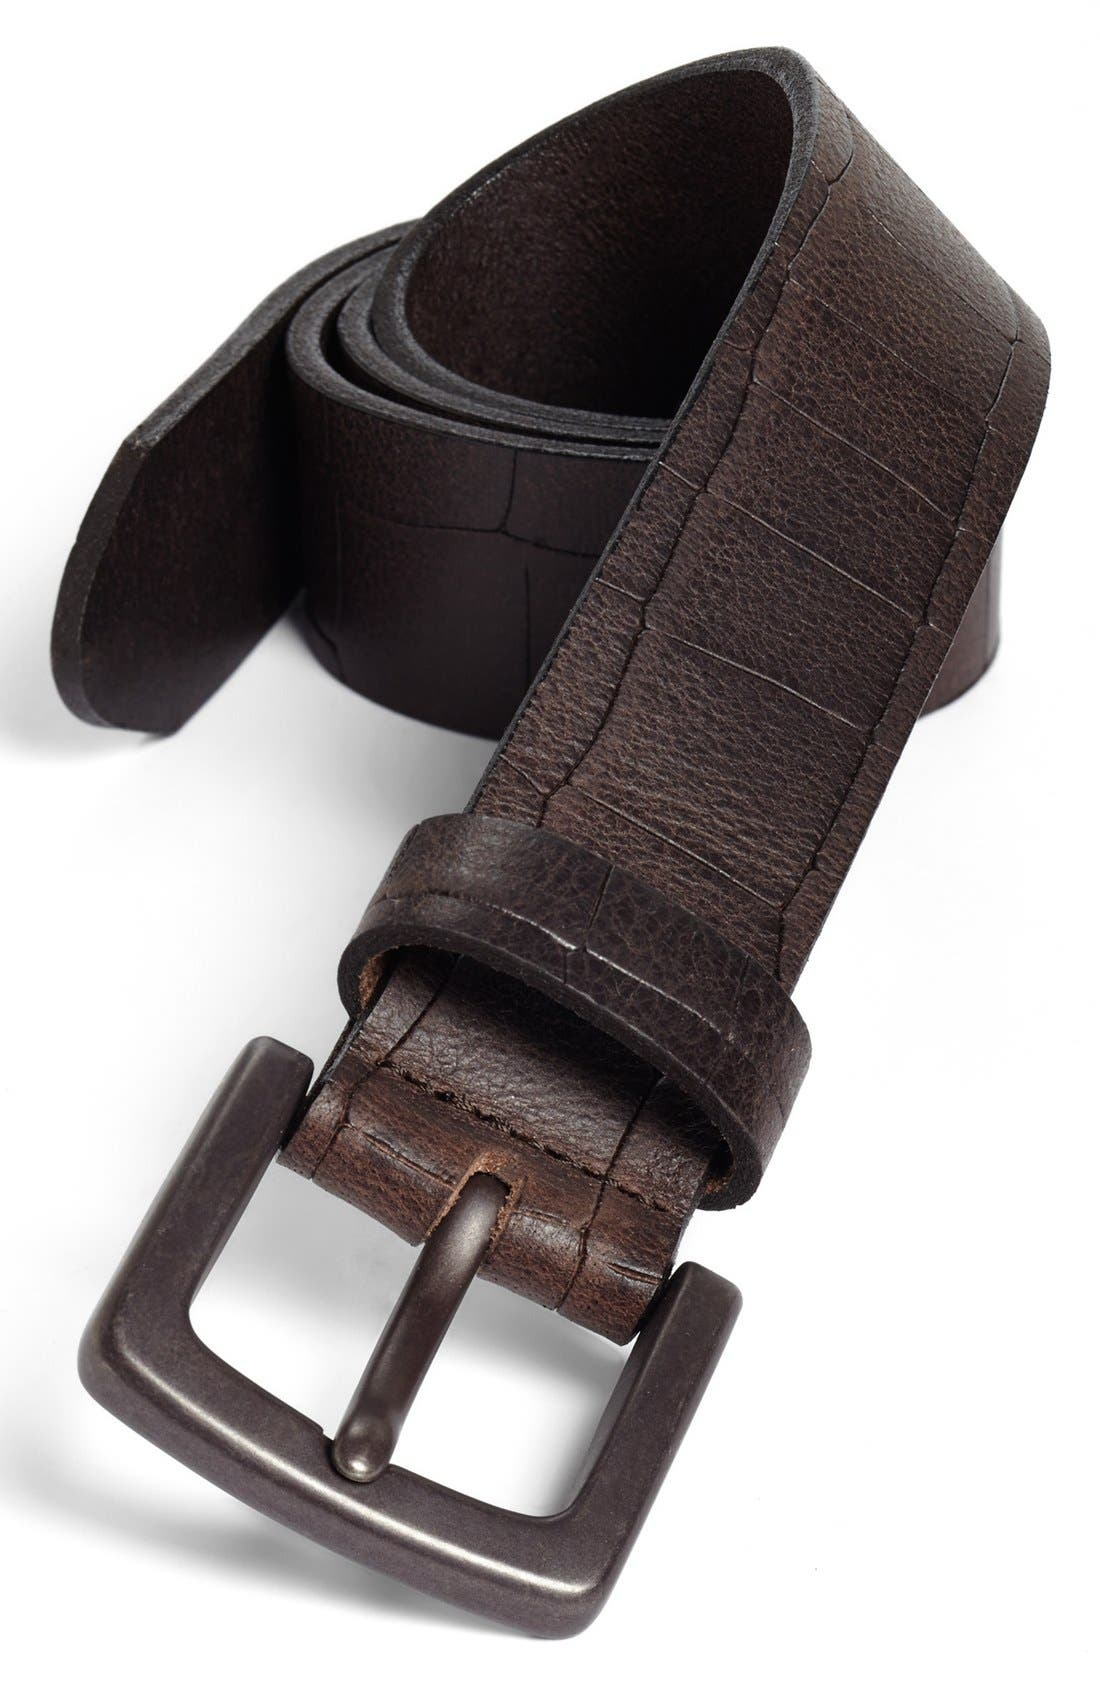 Bosca Gator Embossed Belt